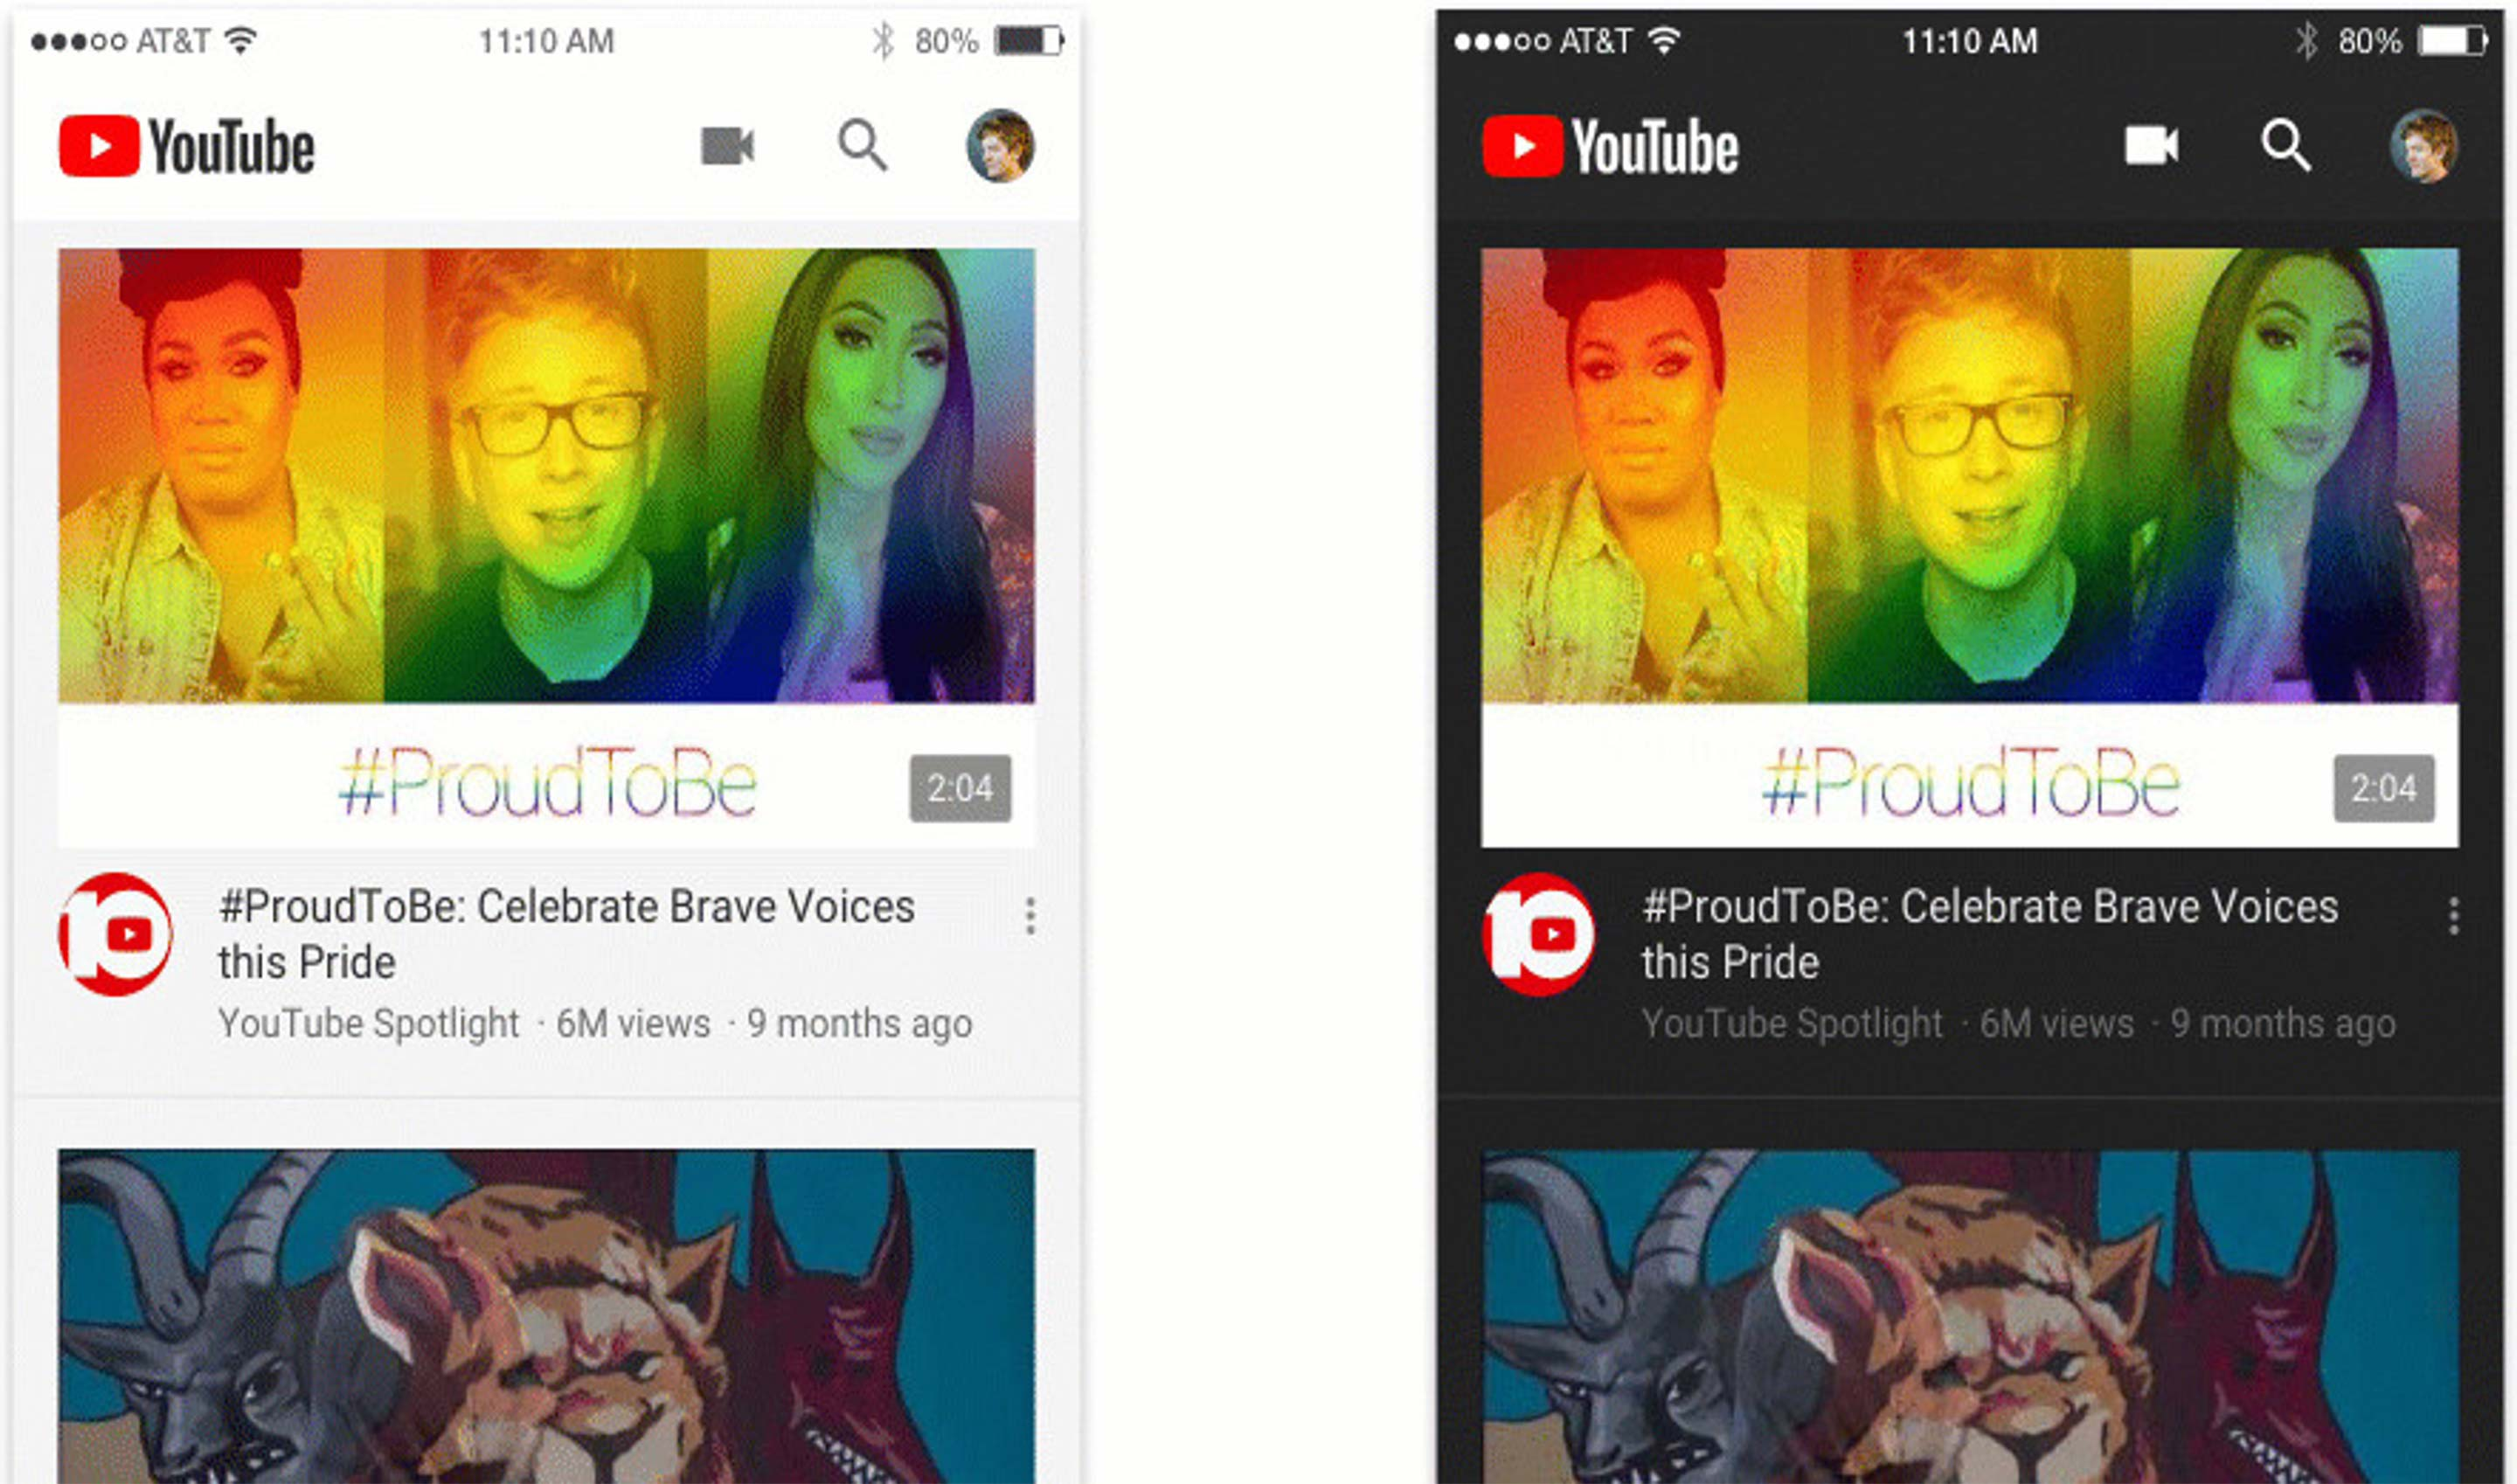 A comparison of both light and dark modes of YouTube's mobile app.